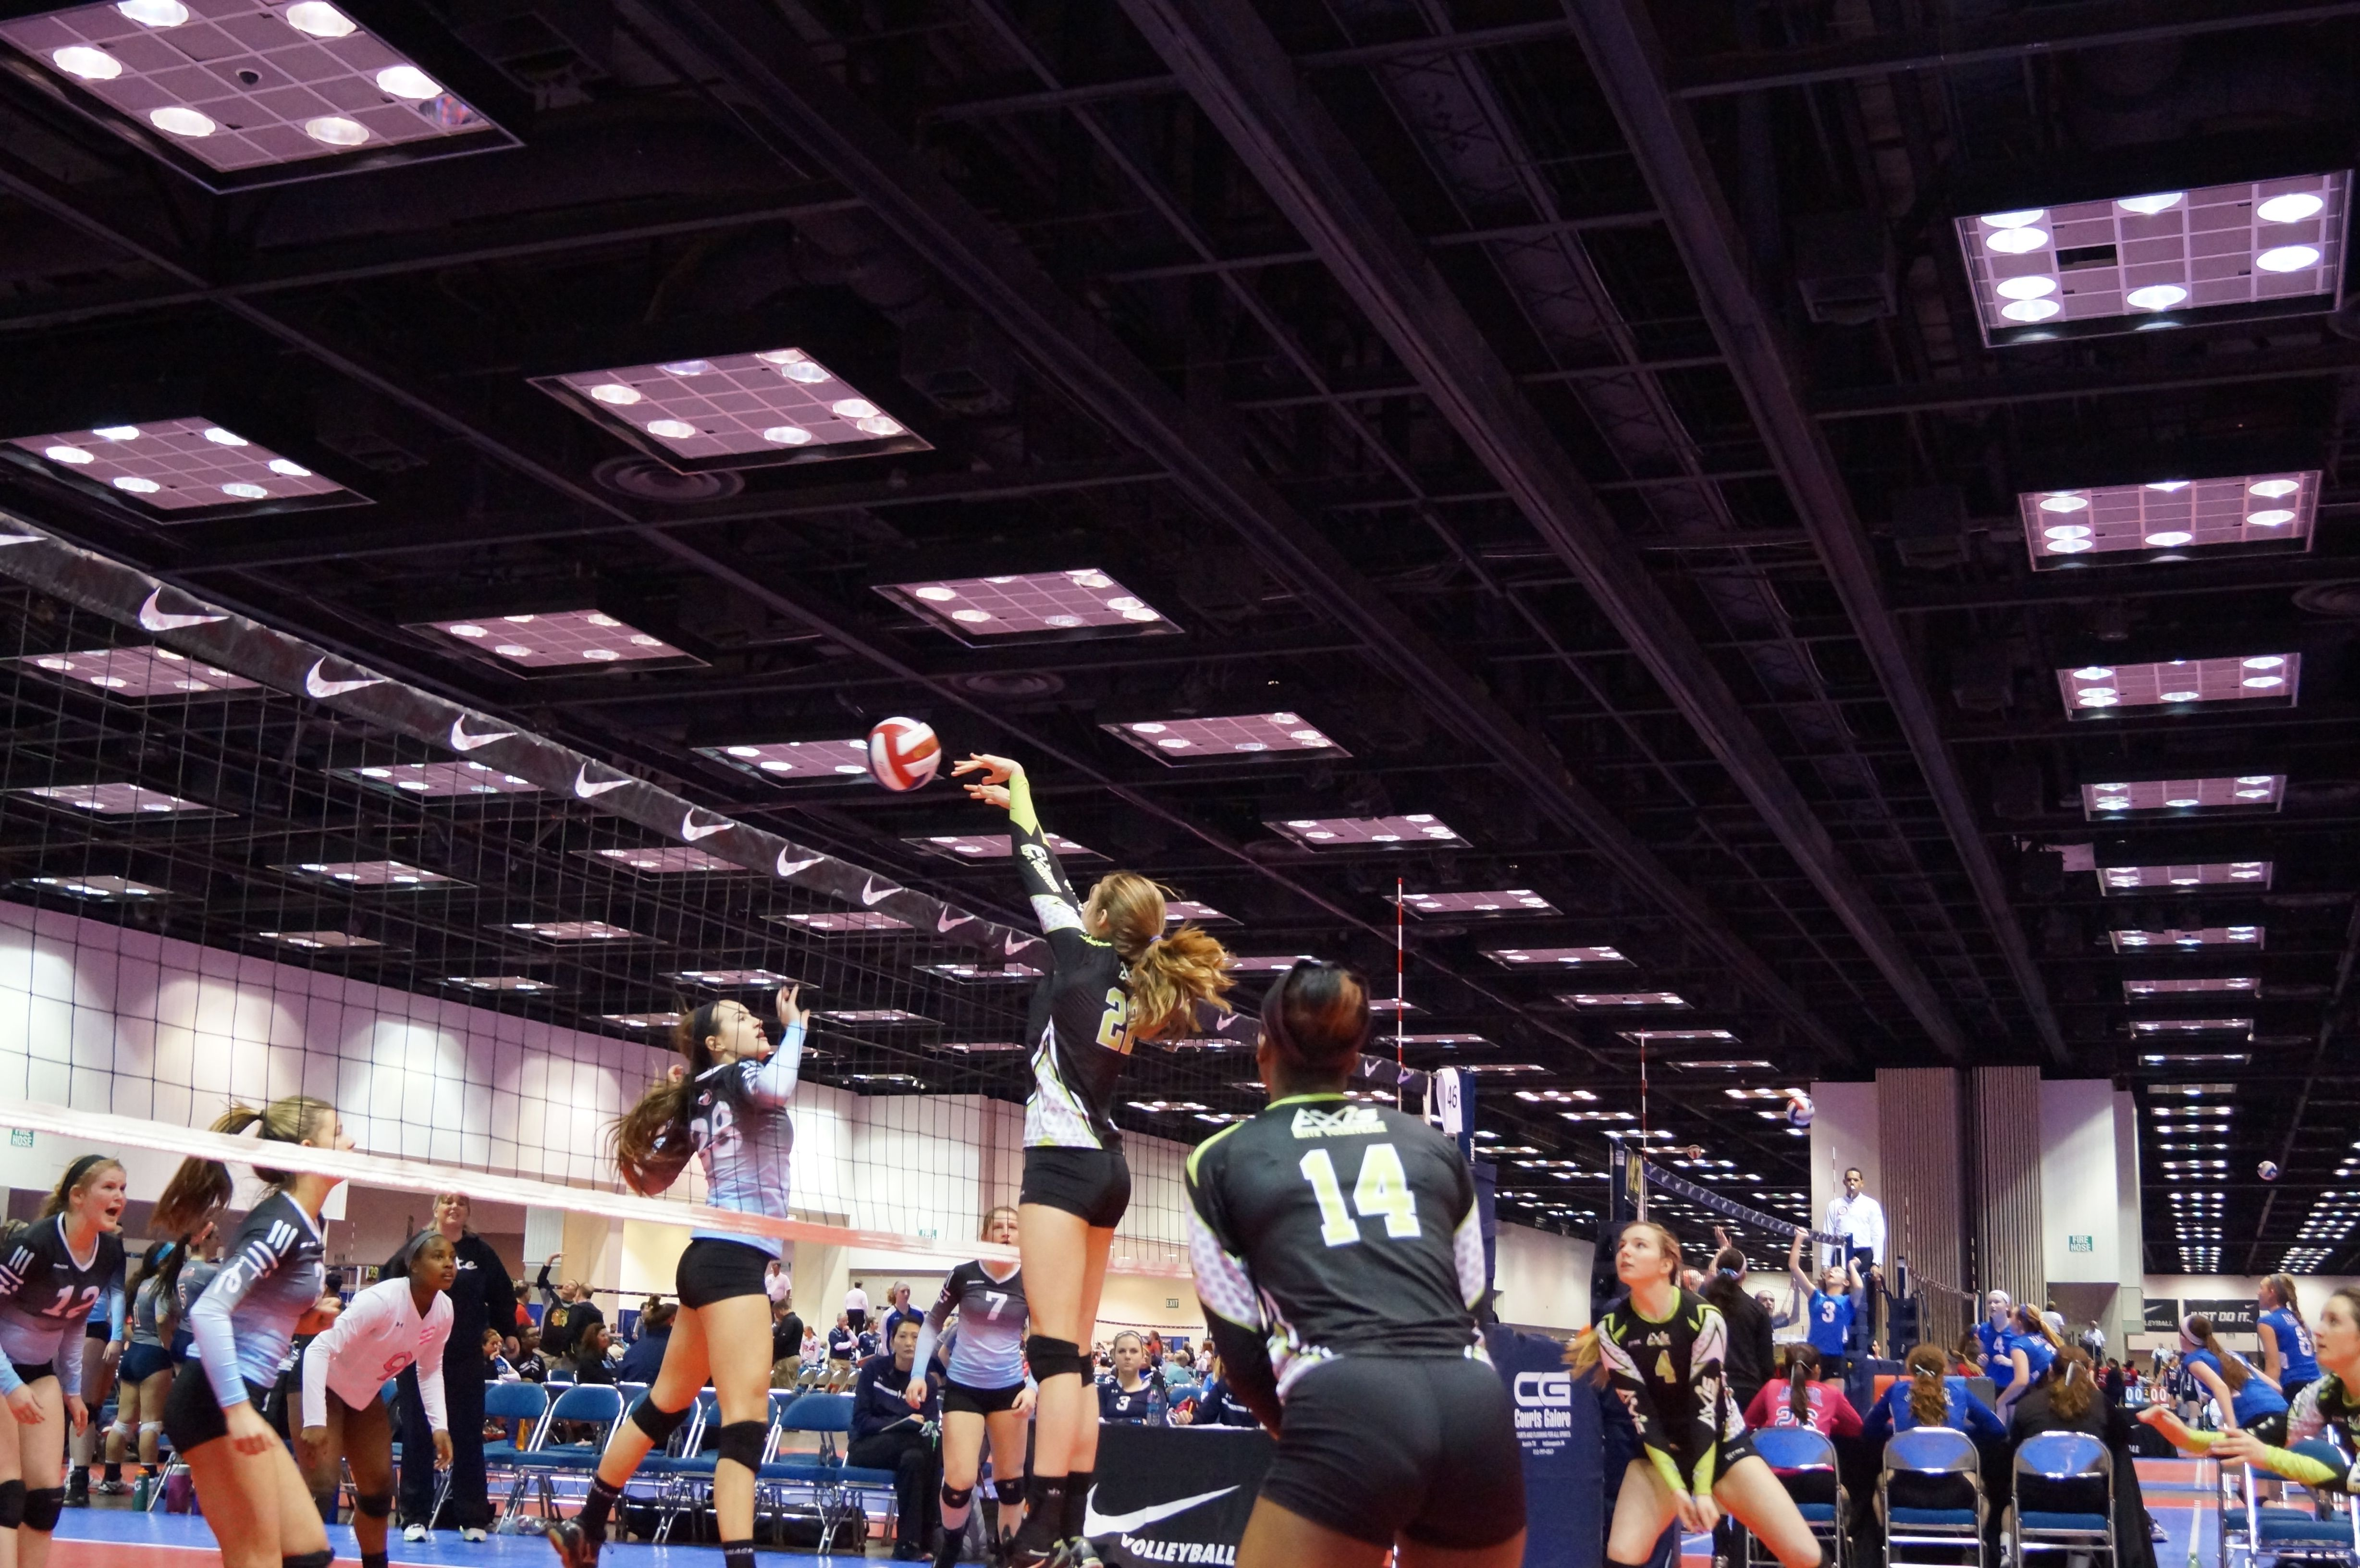 Game Day For The 15 Rox Elite Volleyball Team Volleyball Team Volleyball Elite